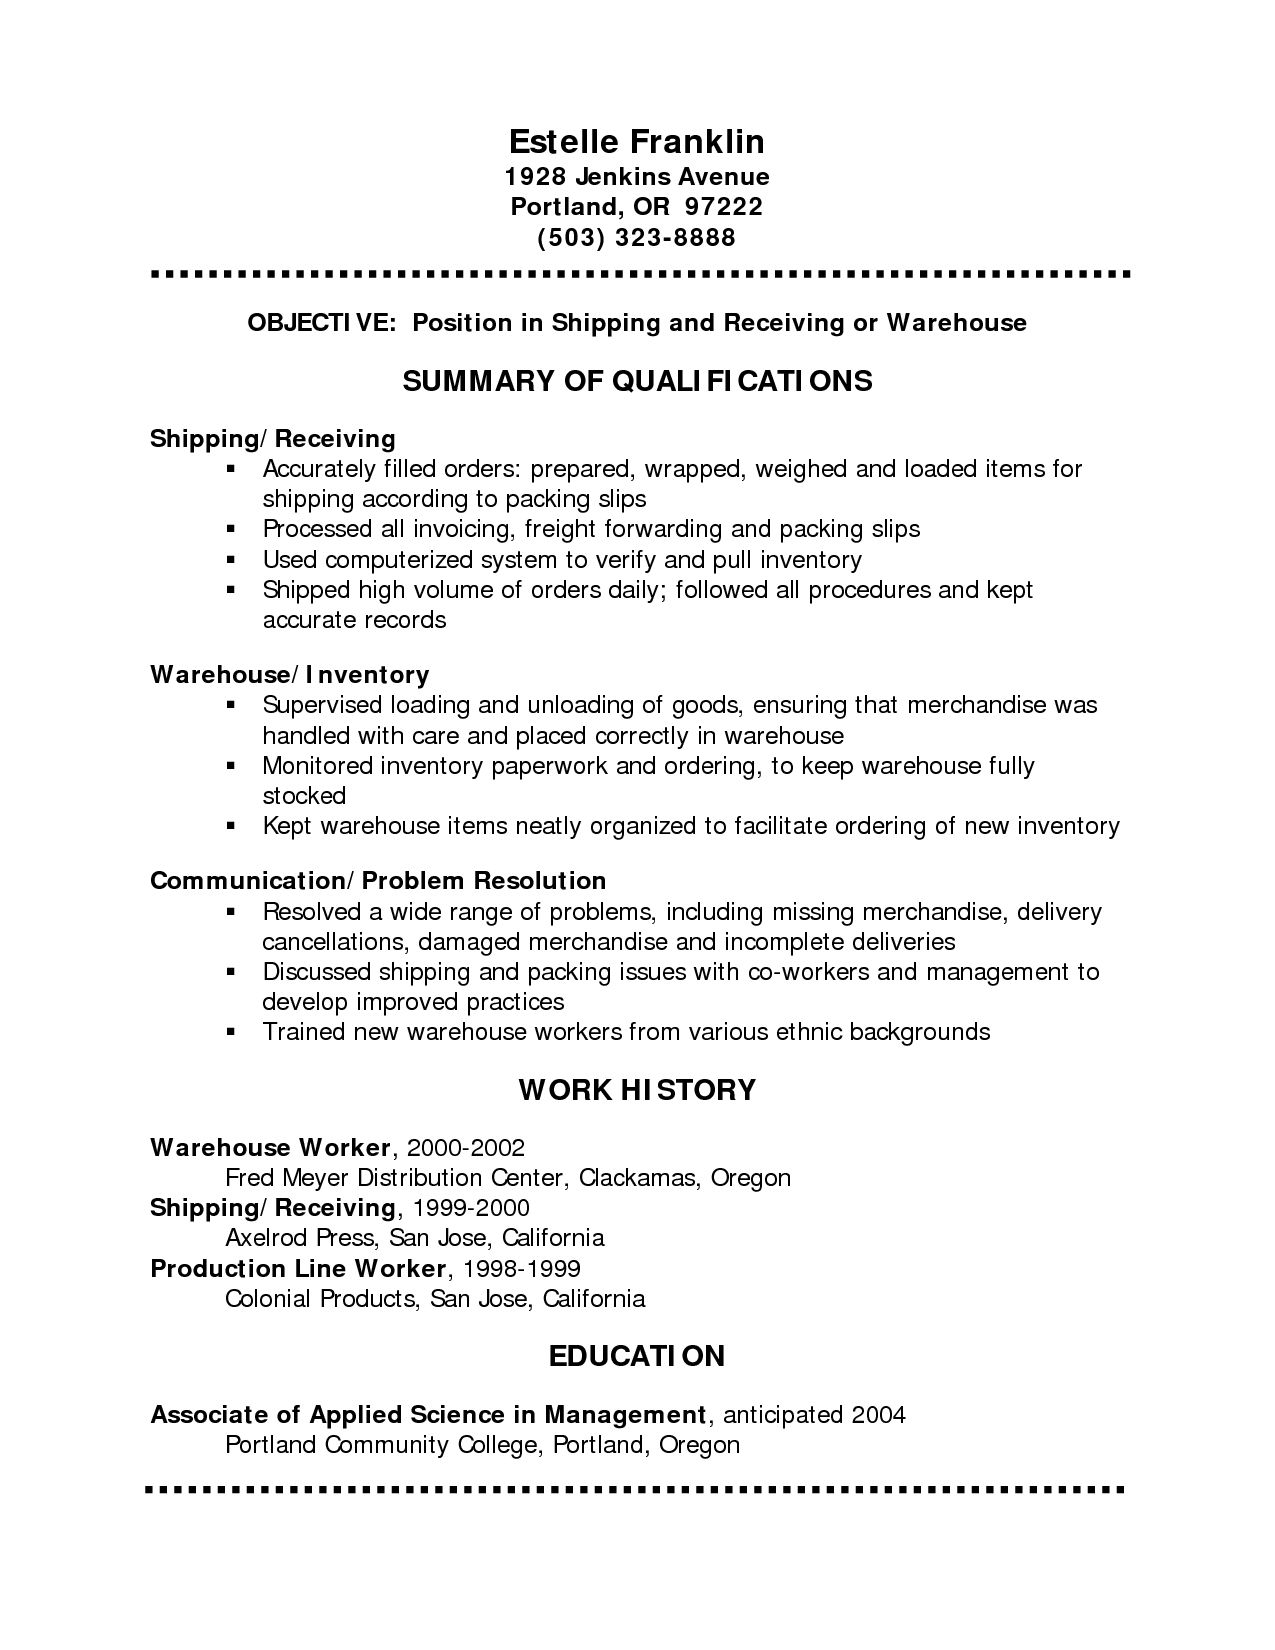 Recent College Graduate Resume Your Guide The Best Free Resume Templates Good Samples Examples